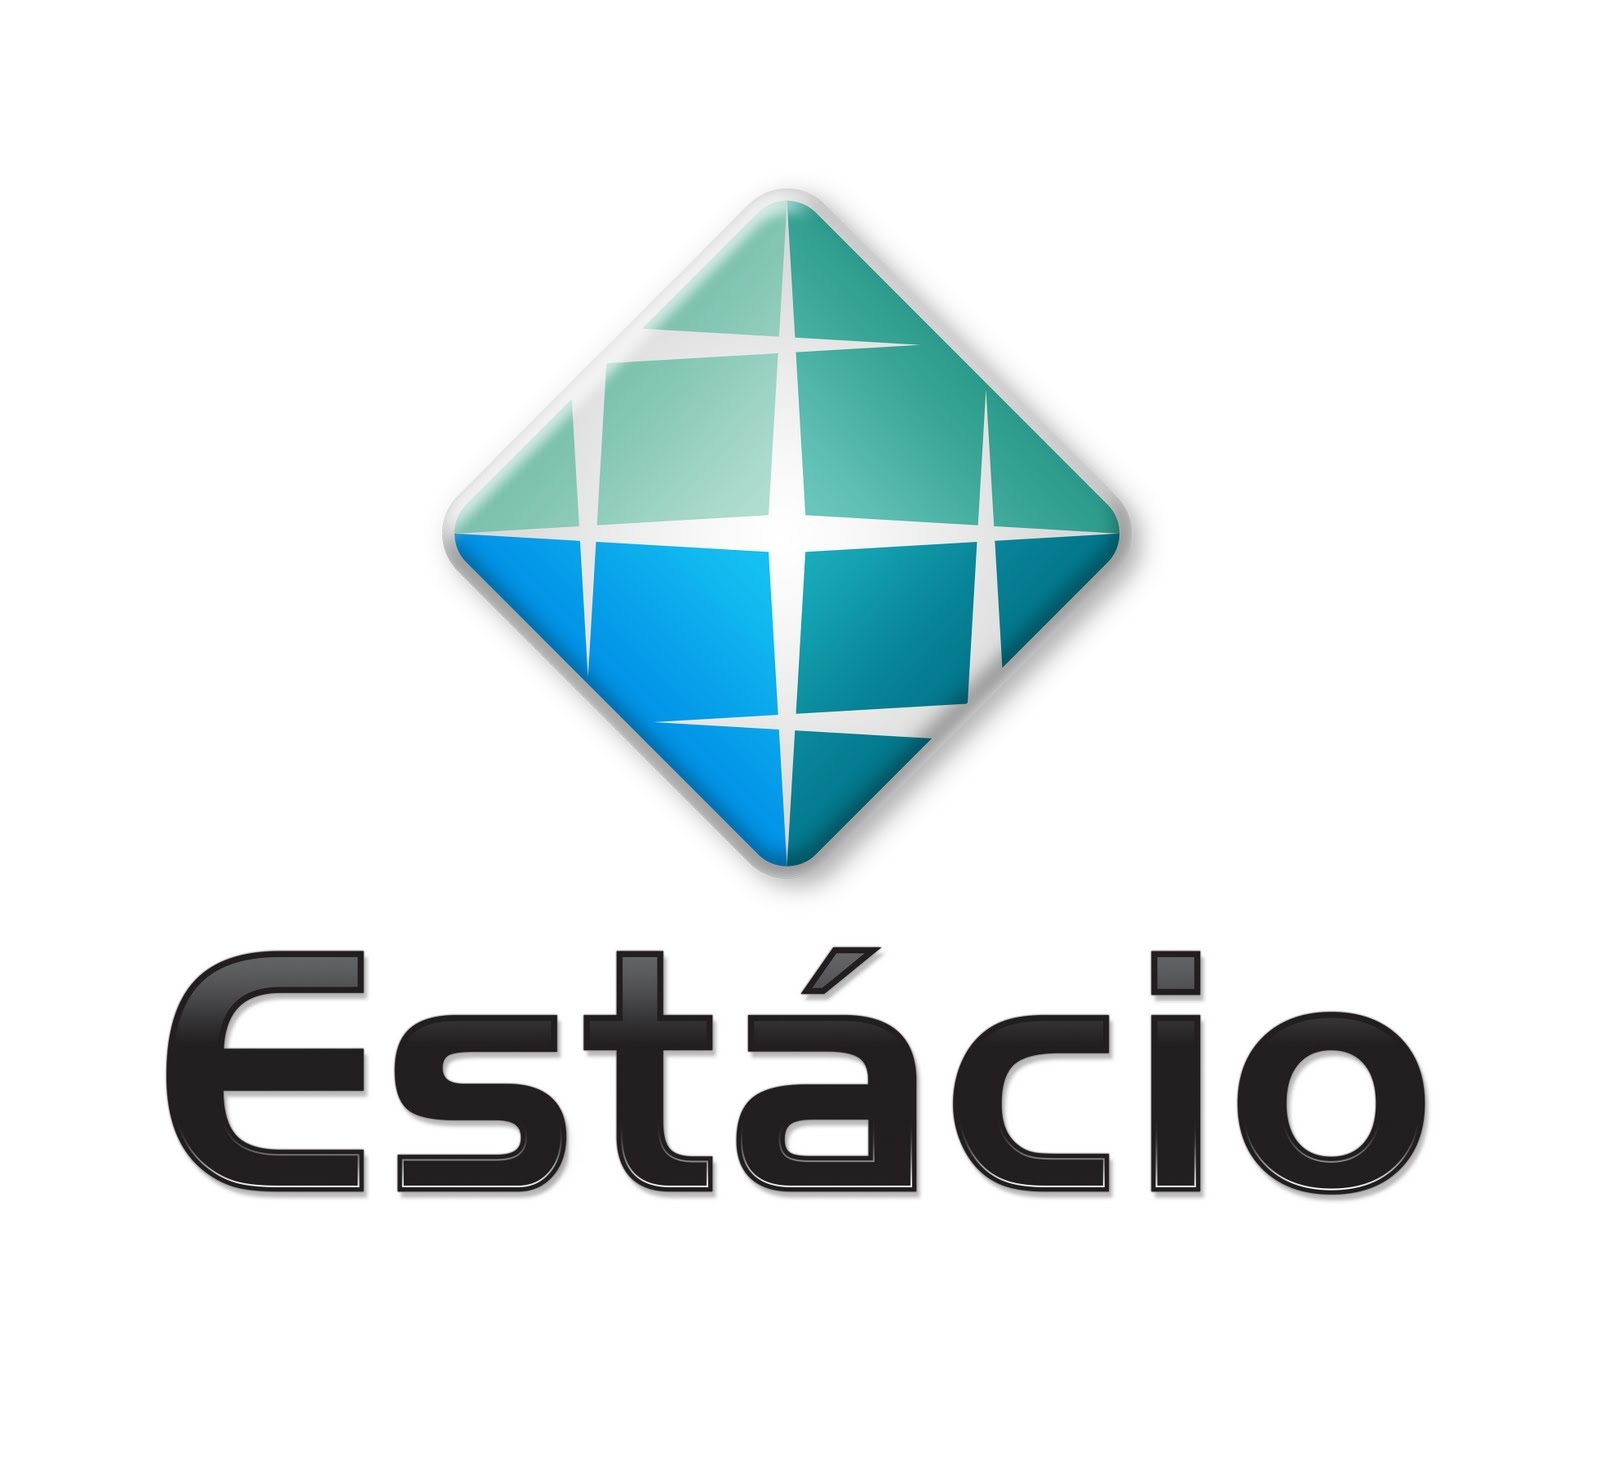 estacio-logo-faculdade-2